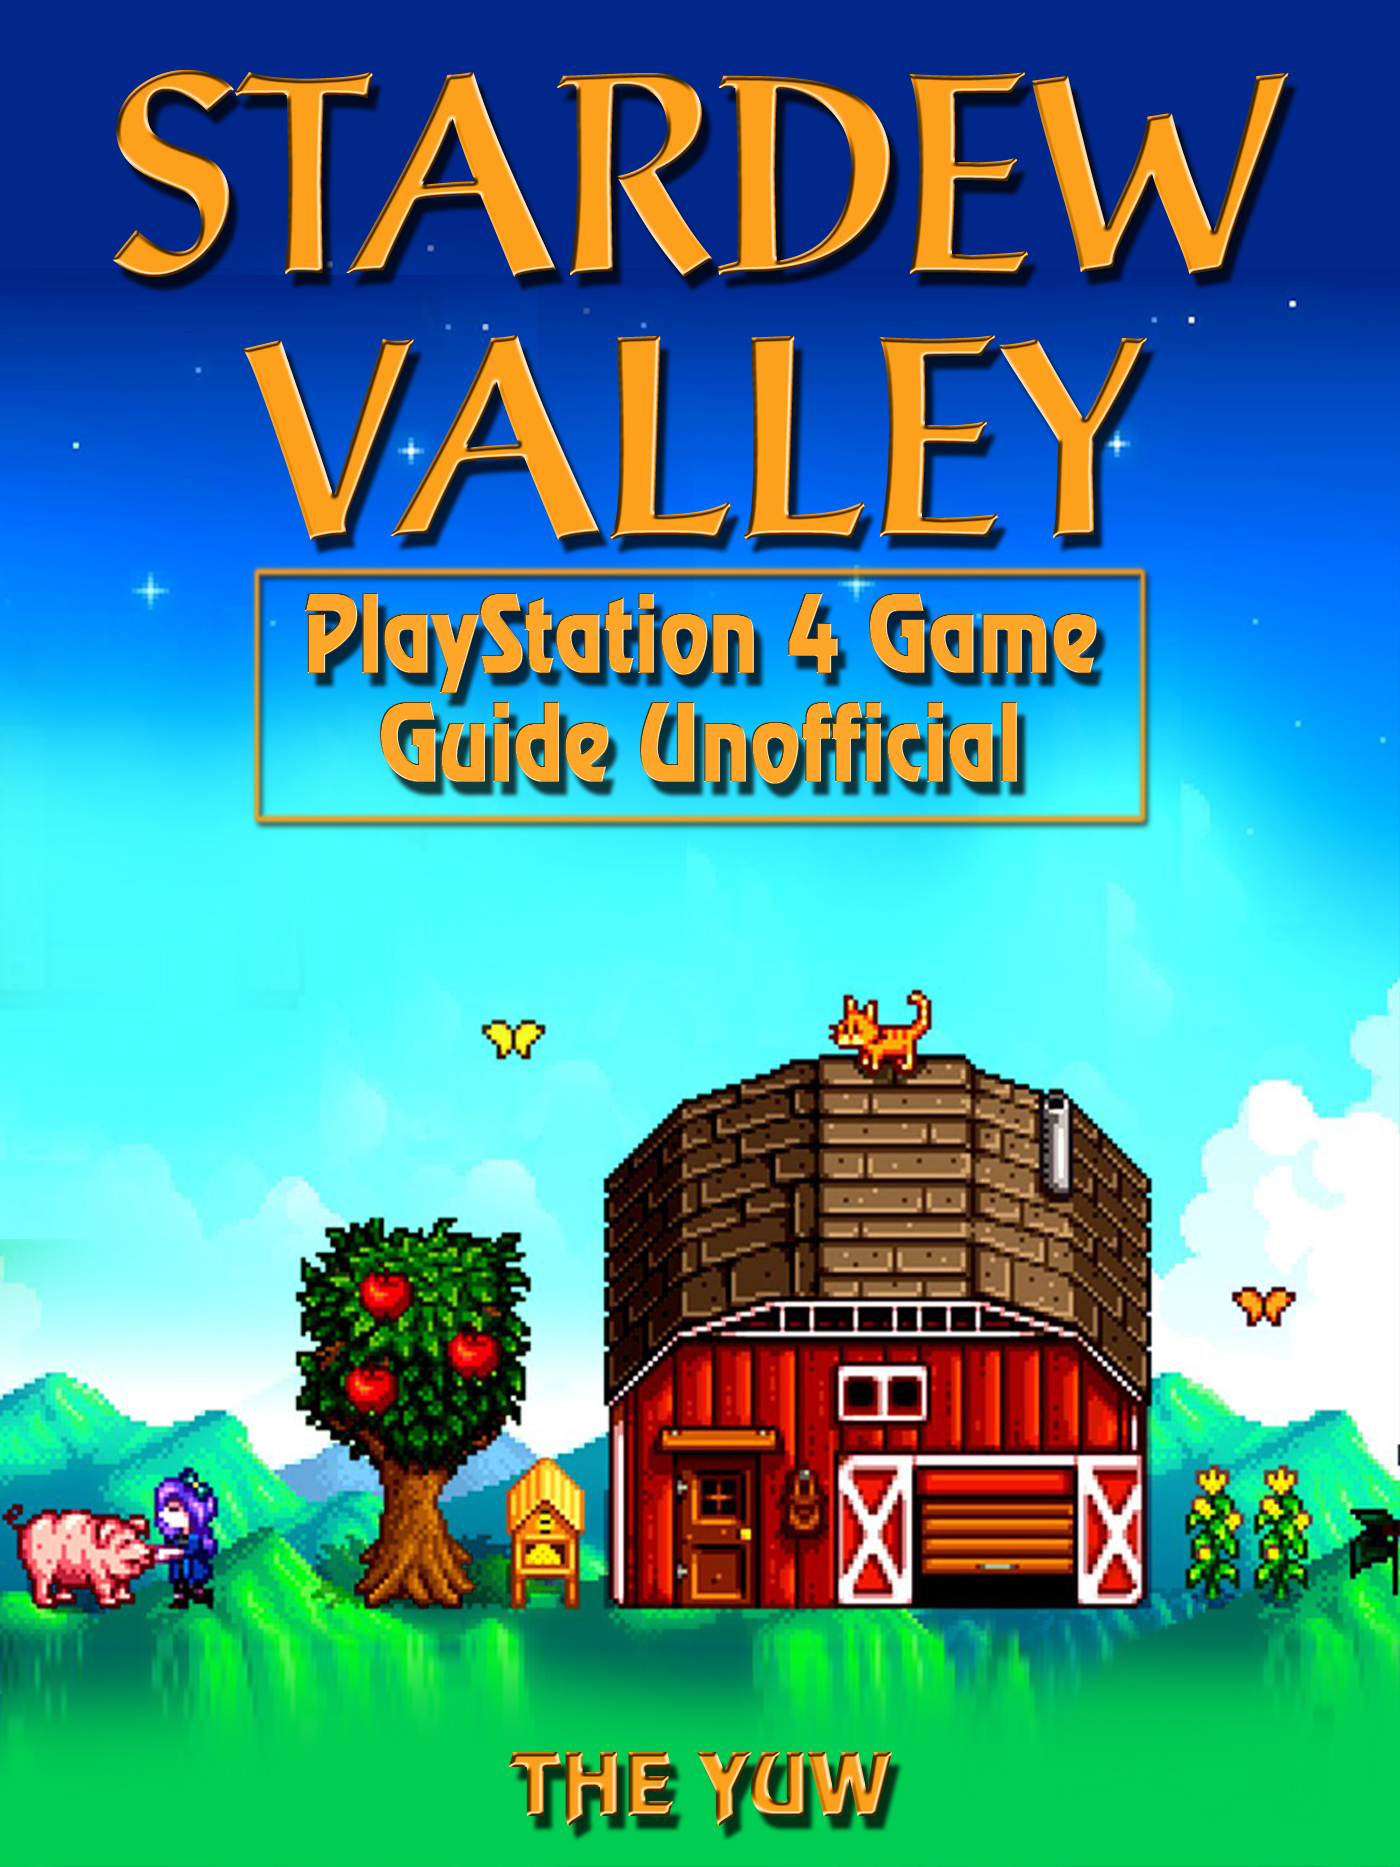 Stardew Valley Nintendo Switch Game Guide Unofficial By The Yuw